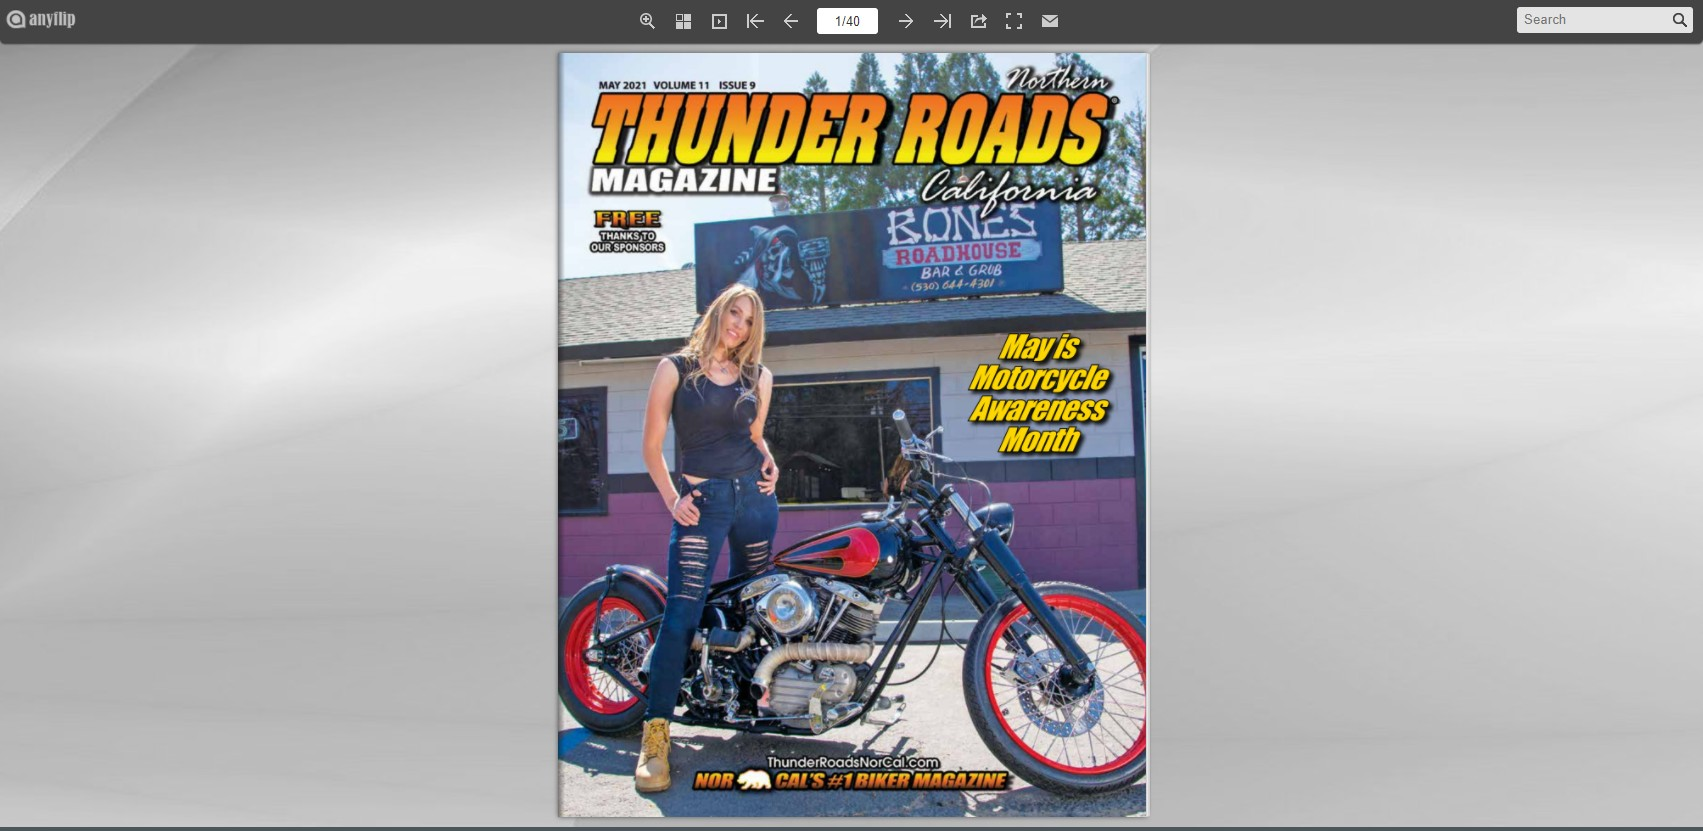 Thunder Roads NorCal May 2021 Issue